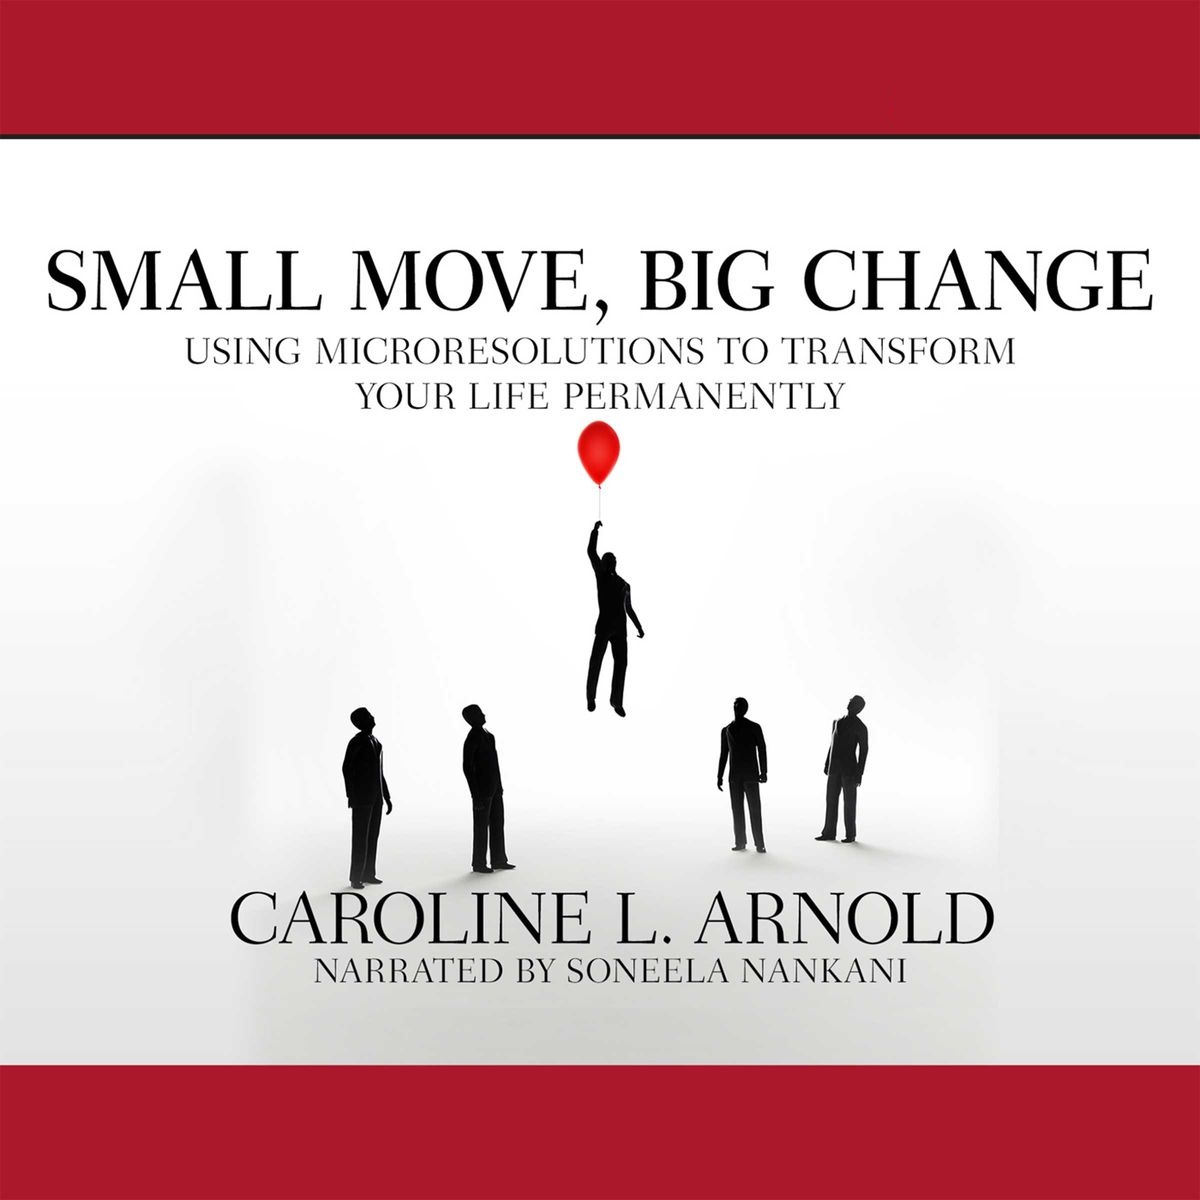 Small Move, Big Change: Using Microresolutions to Transform Your Life Permanently - Caroline L. Arnold - quotes, rating, reviews, where to buy